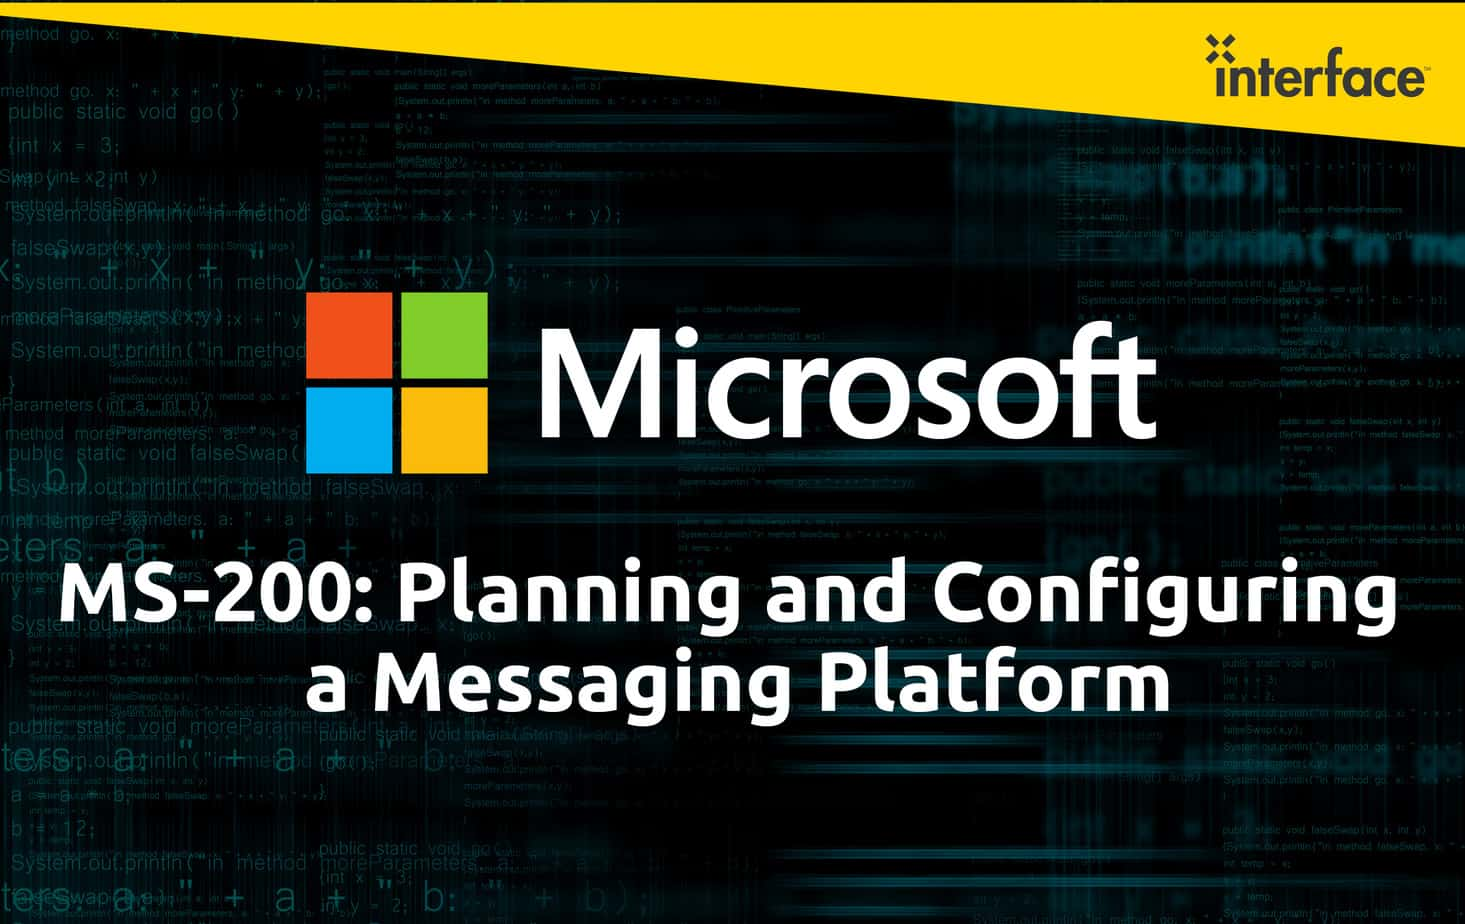 MS-200: Planning and Configuring a Messaging Platform